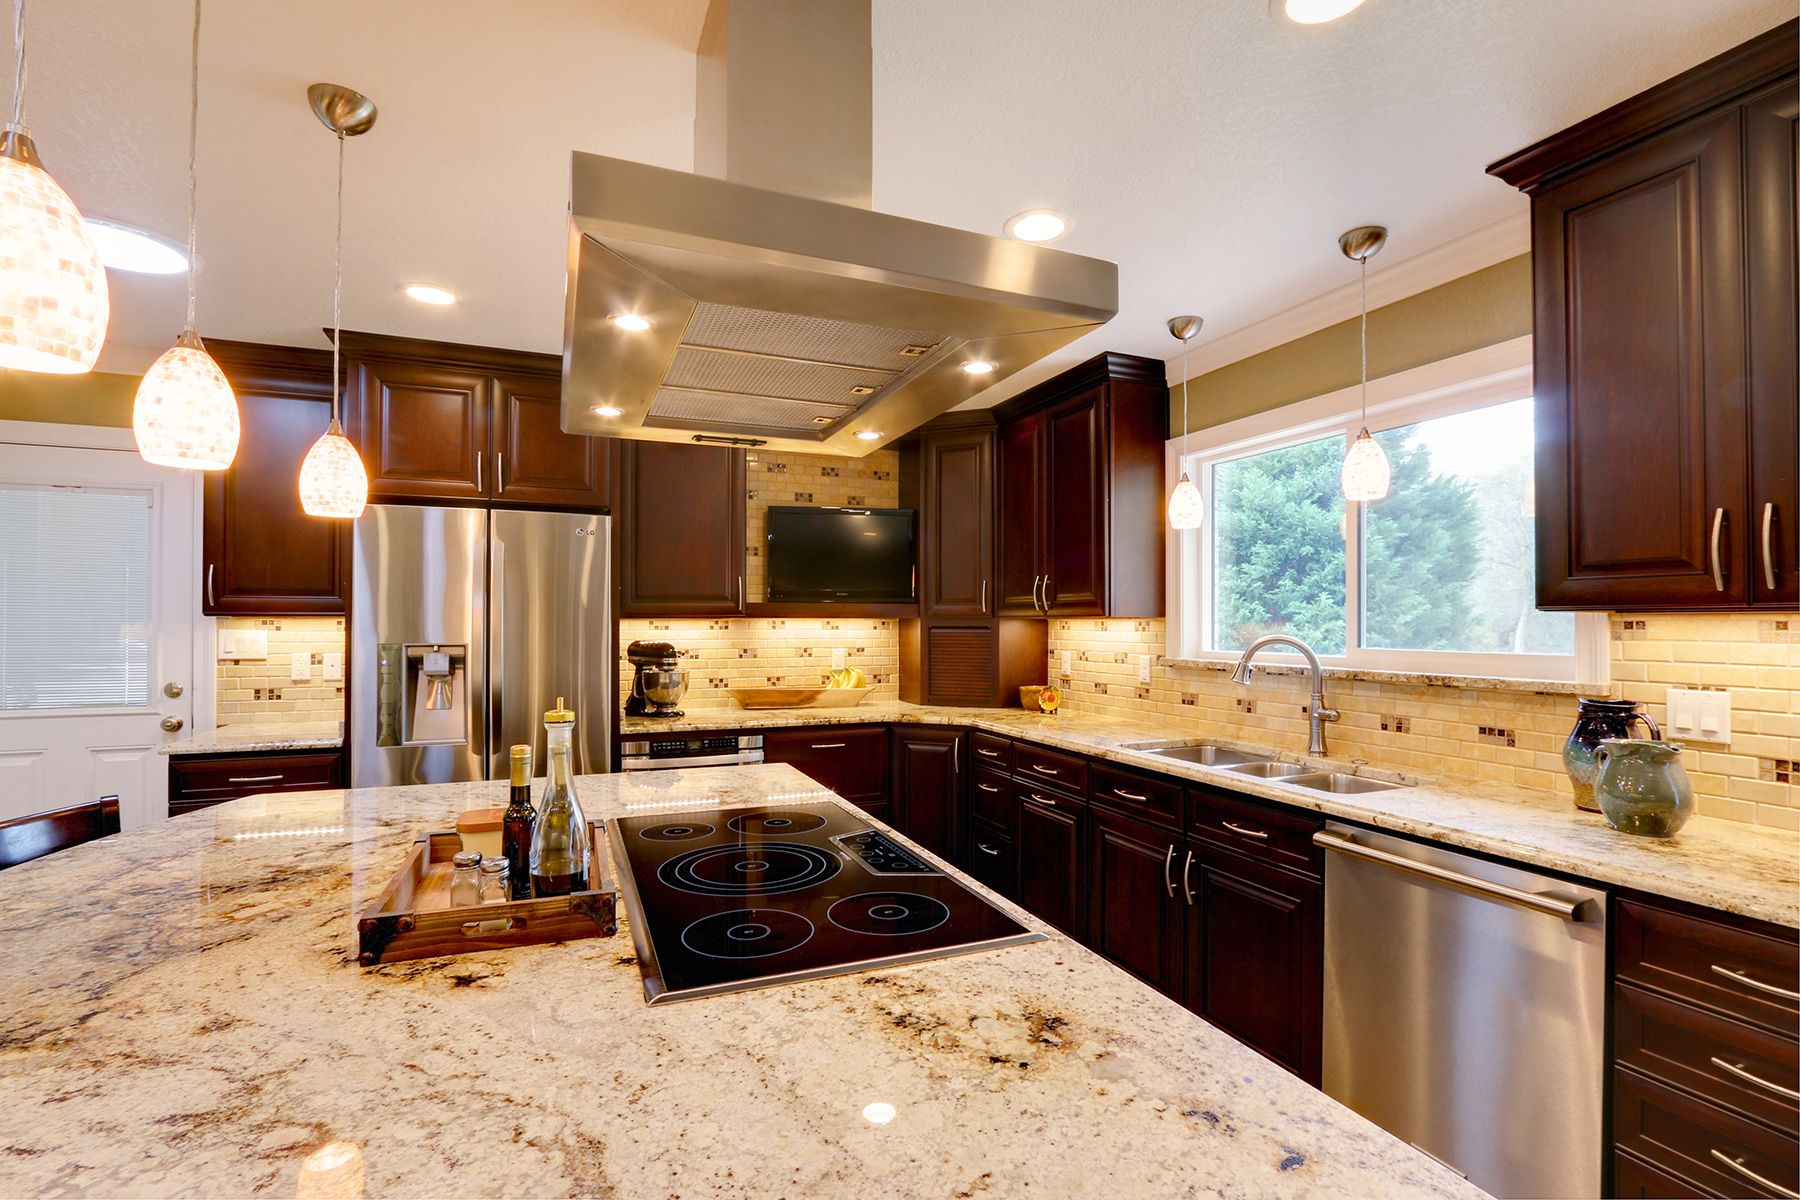 A Remodeled Kitchen In Pensacola Florida Now Has A Coherent And Soothing Color Scheme Designer As Cherry Cabinets Kitchen Brown Kitchens Dark Brown Cabinets